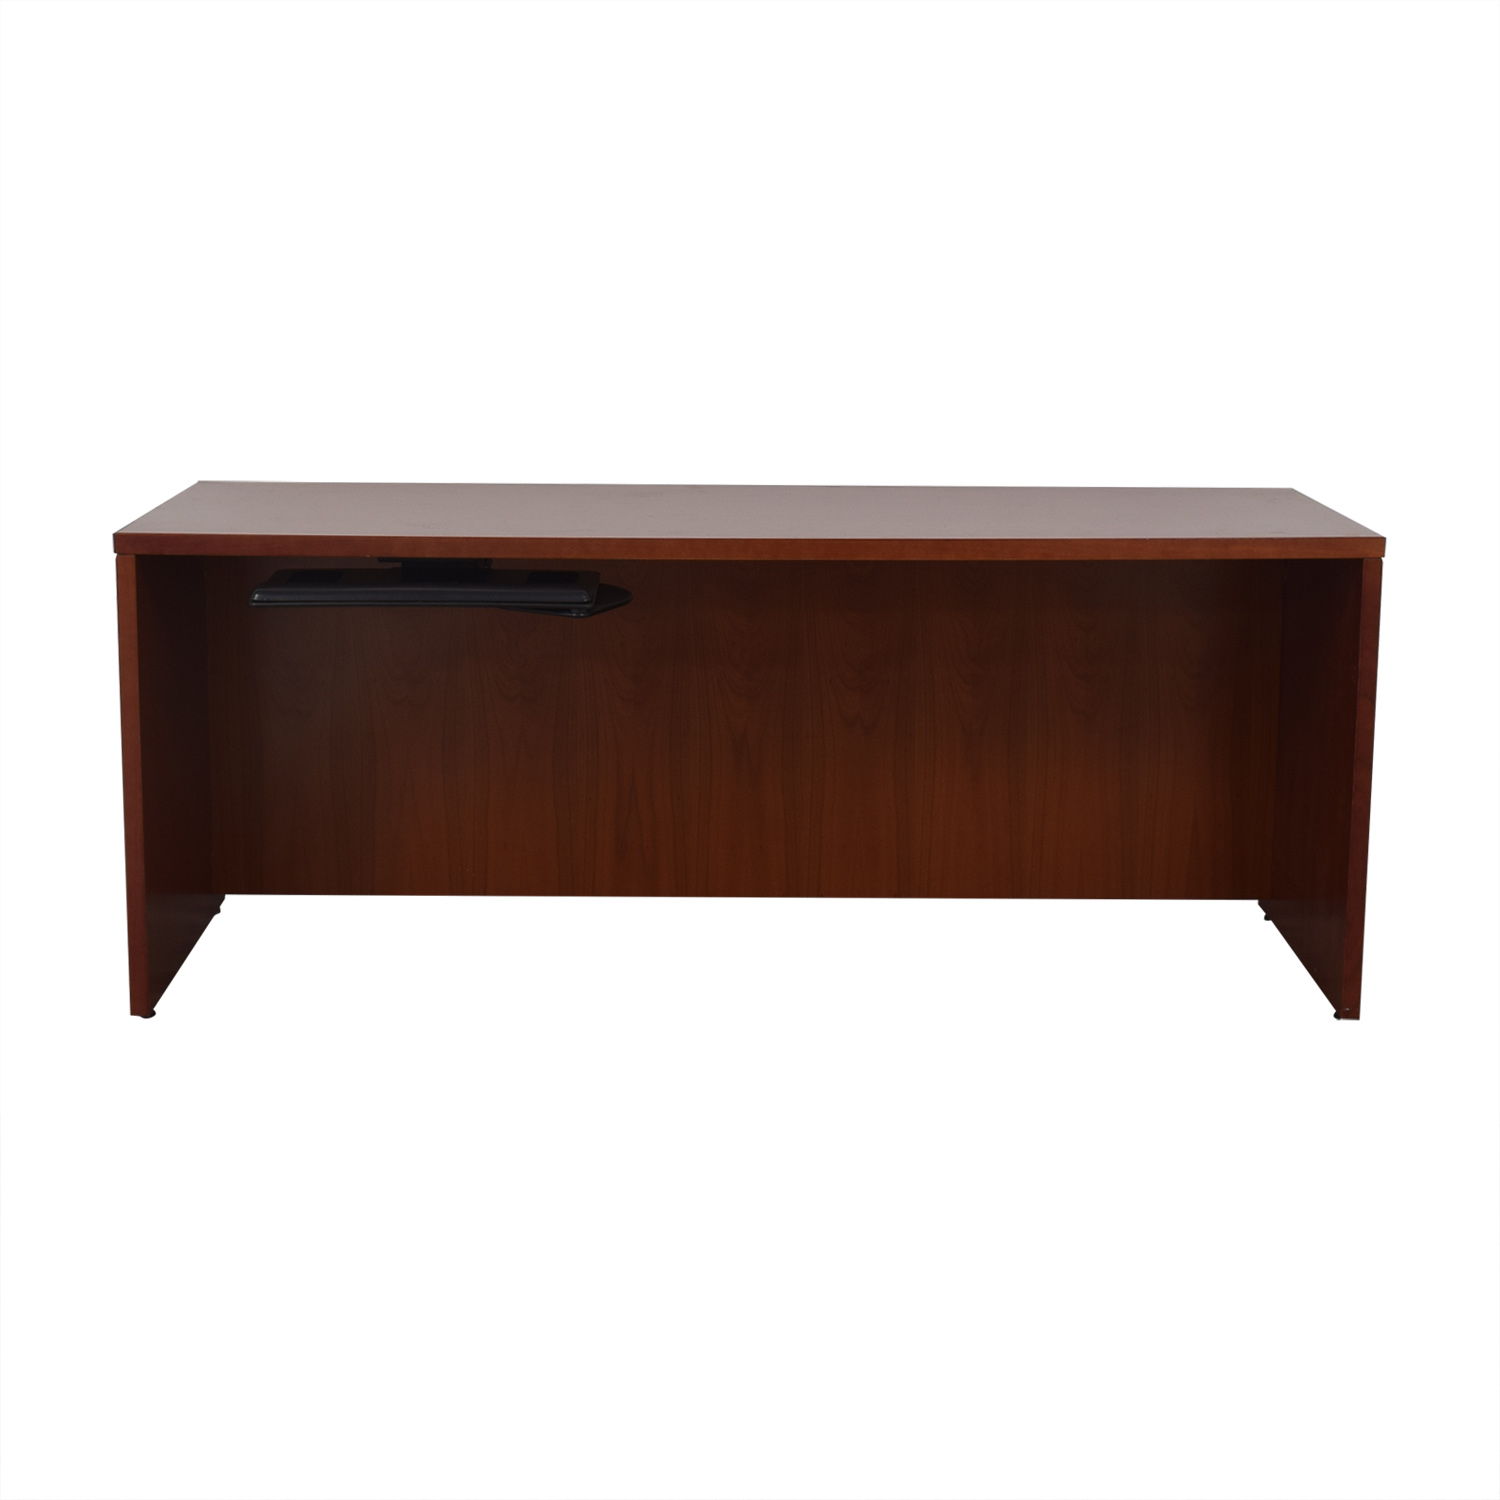 buy A-America Wood Furniture Office Desk A-America Wood Furniture Home Office Desks